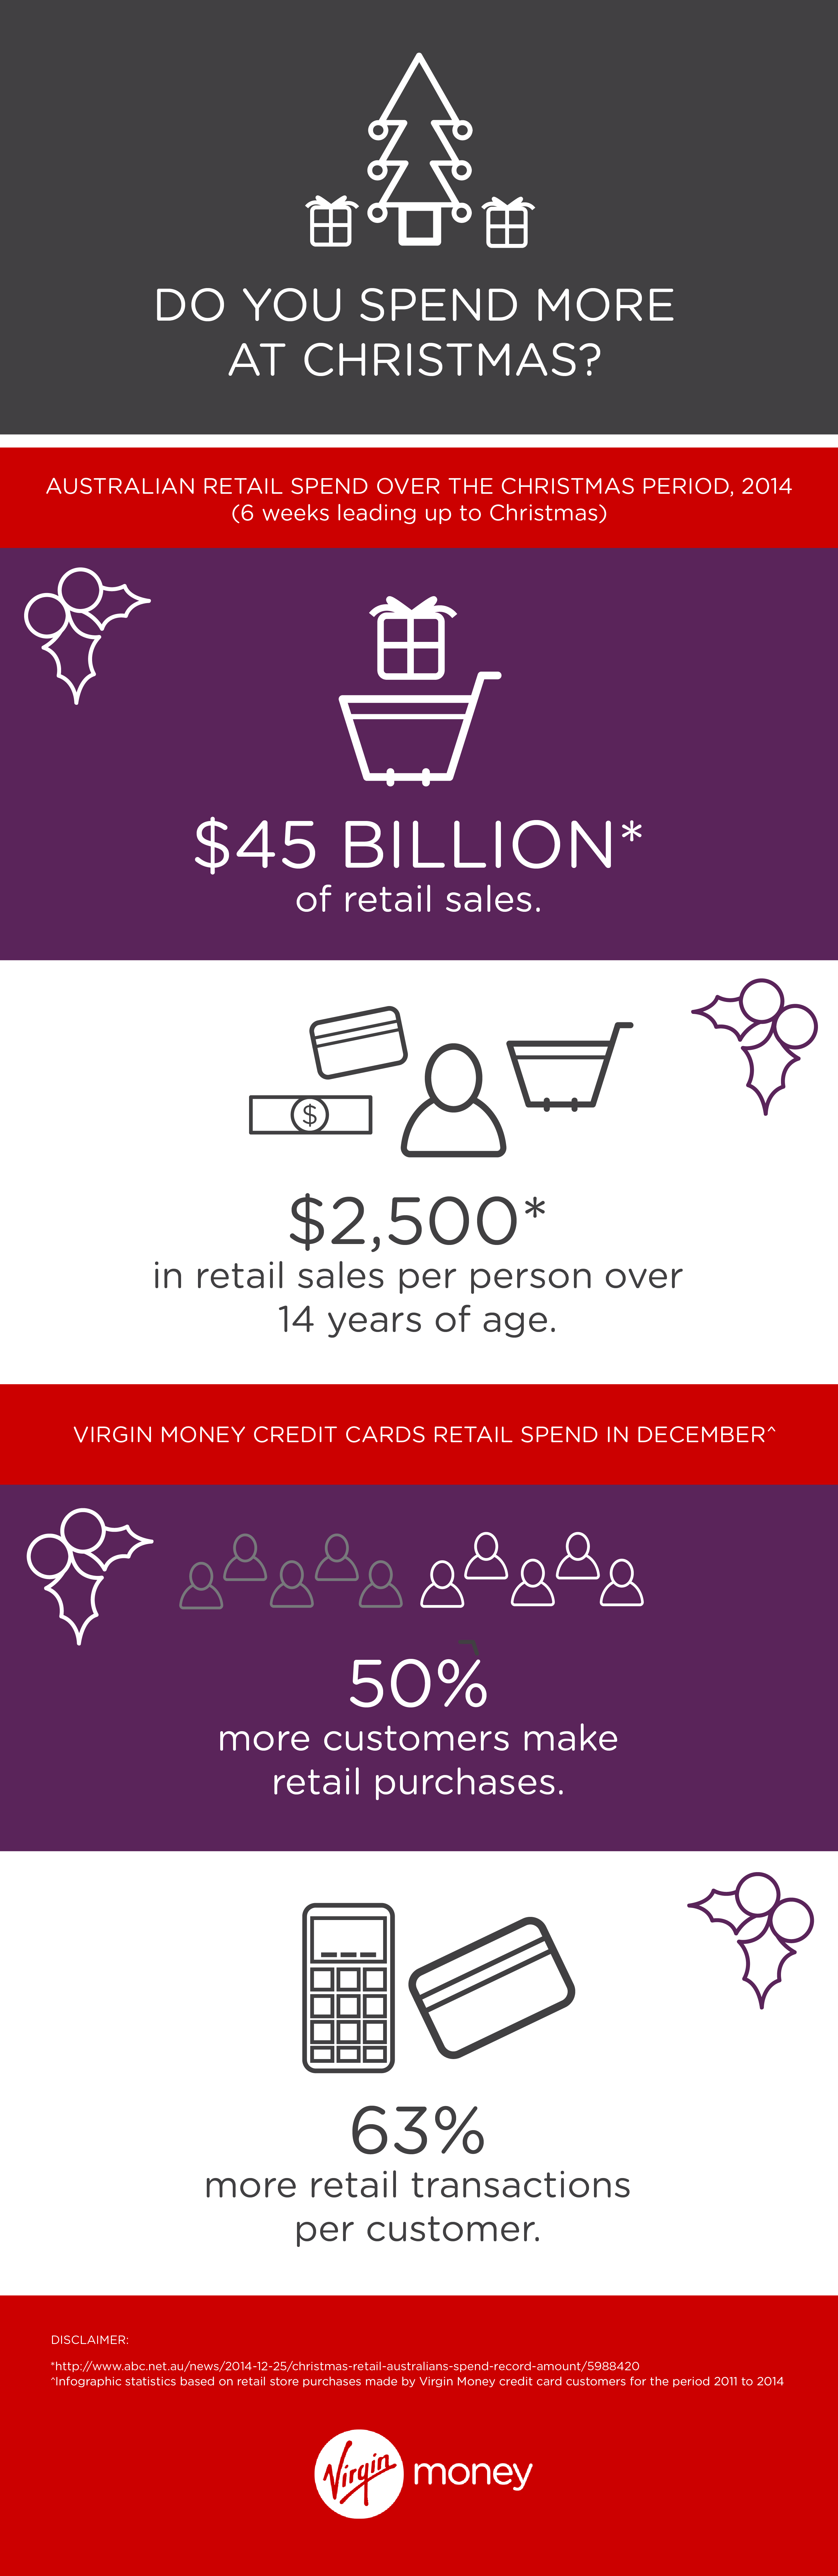 Christmas spend trends - Virgin Money Credit Cards